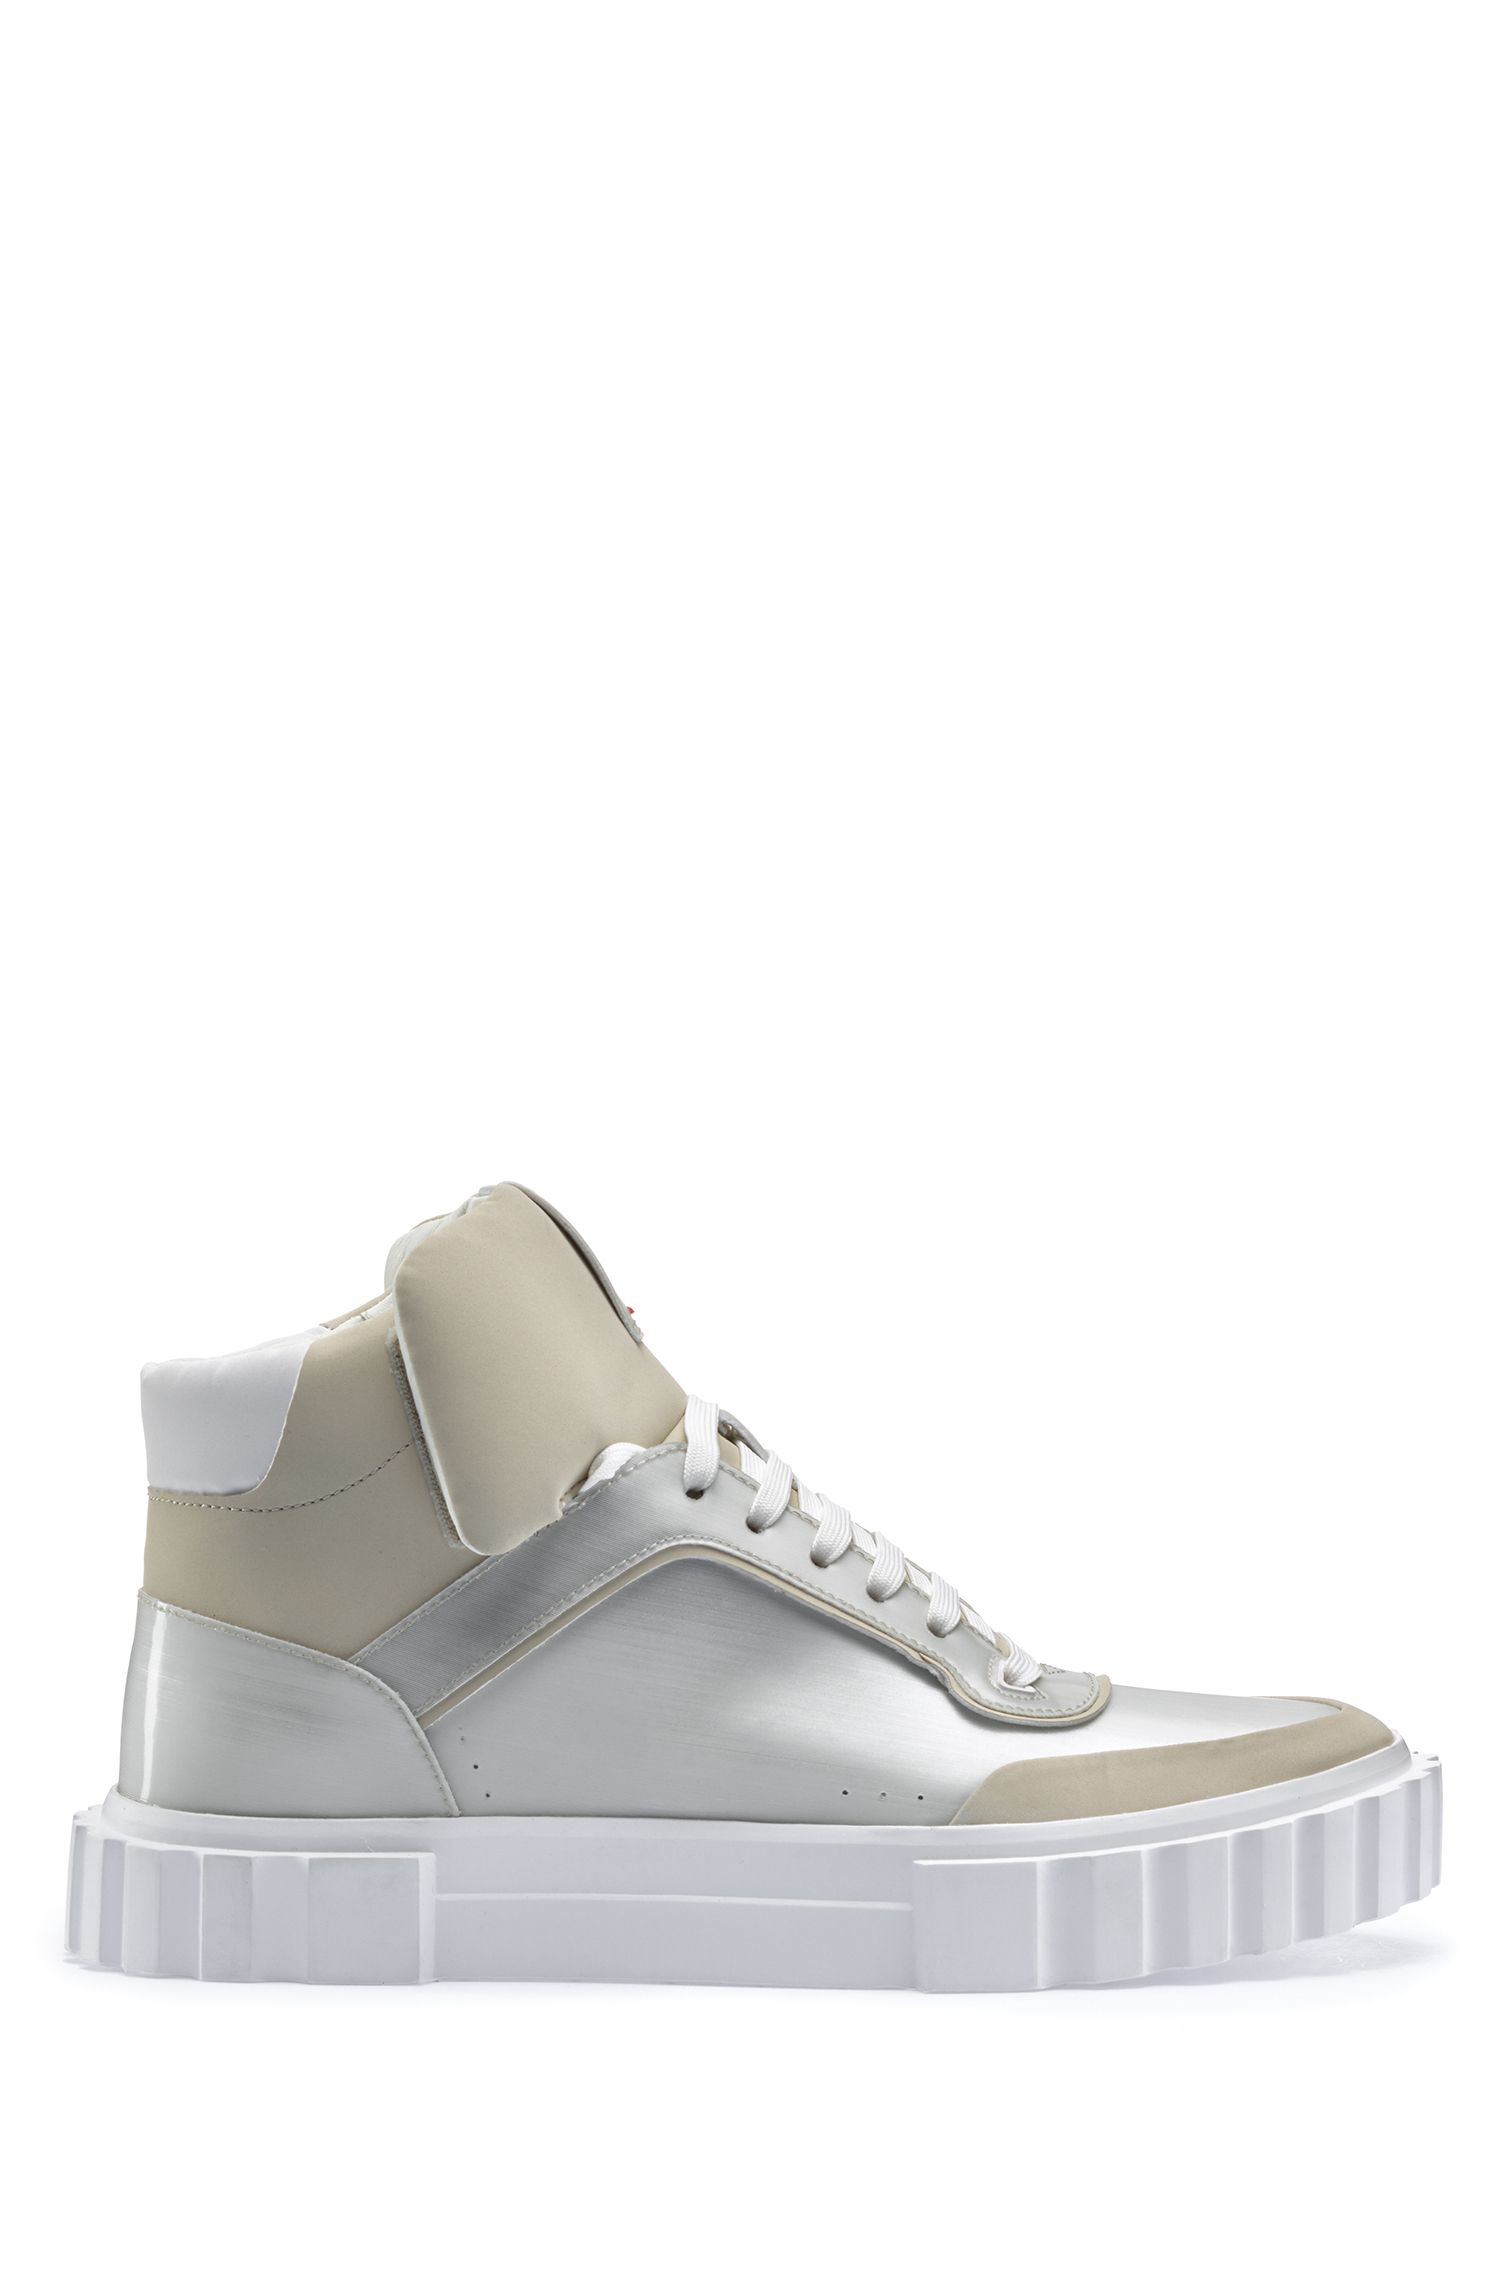 High-top lace-up trainers with metallic finish, Light Grey